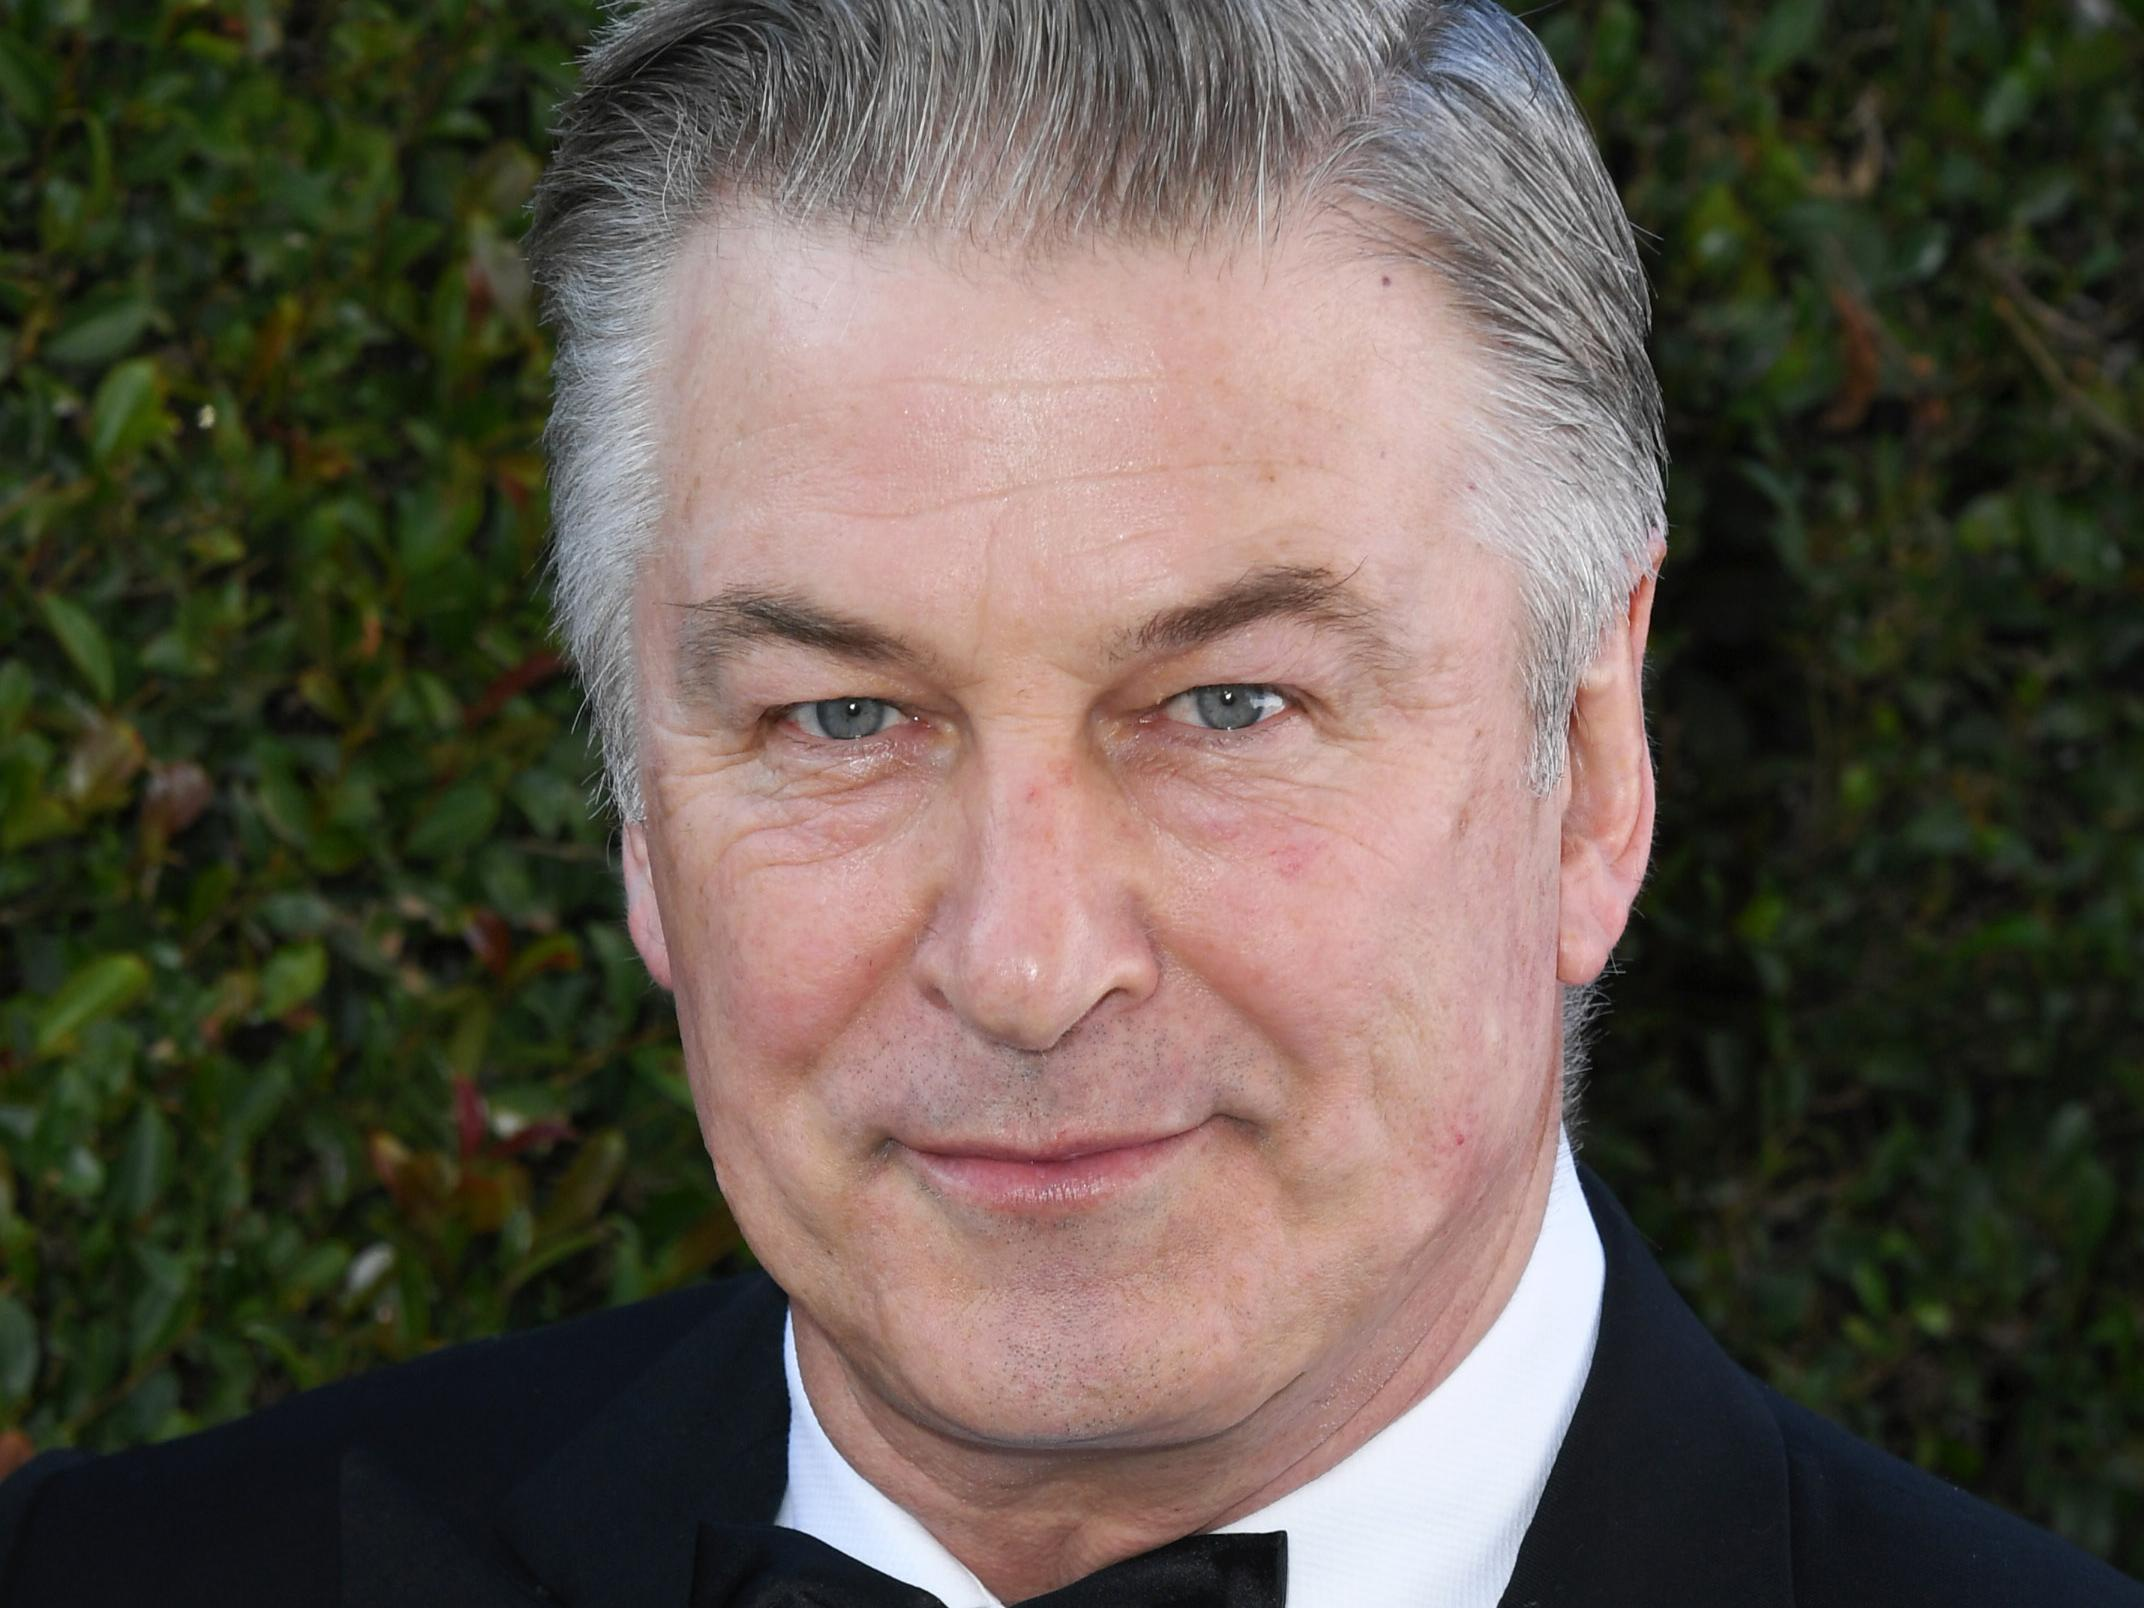 Alec Baldwin says Trump is the 'virus' infecting the US: 'Vaccine ...